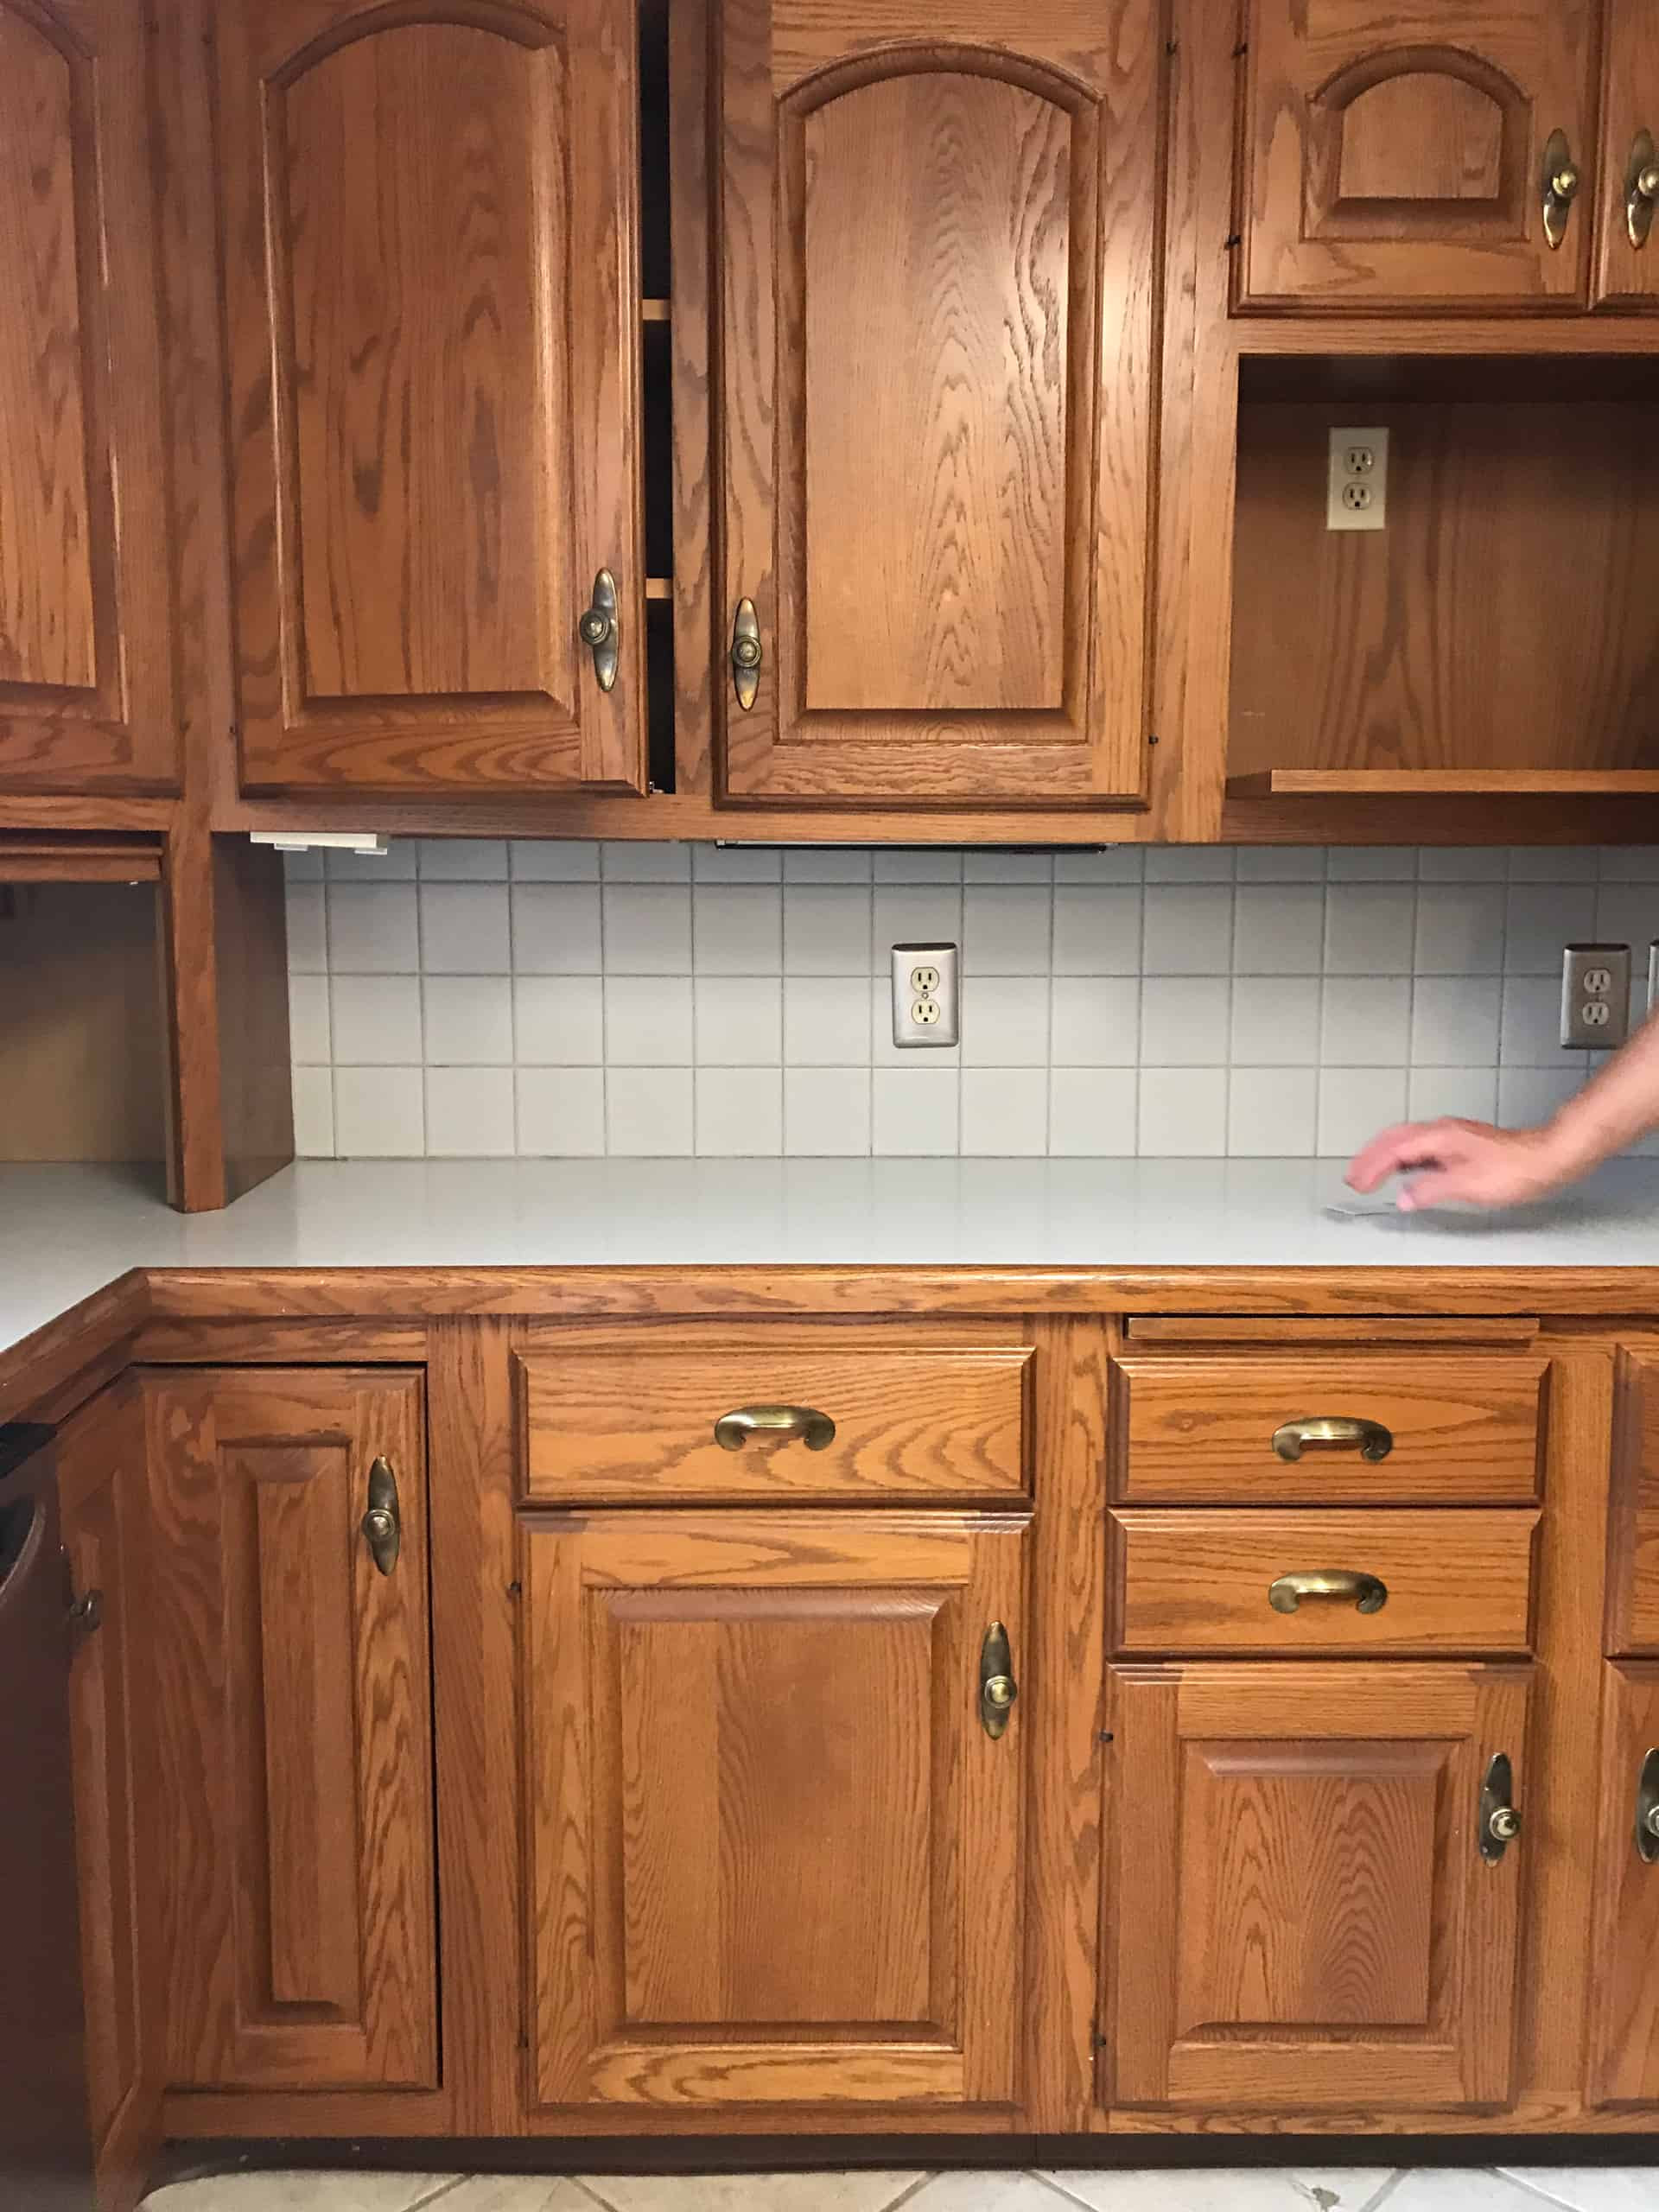 Chalk Paint Kitchen Cabinets Before And After  Painting Cabinets with Chalk Paint—Pros & Cons A